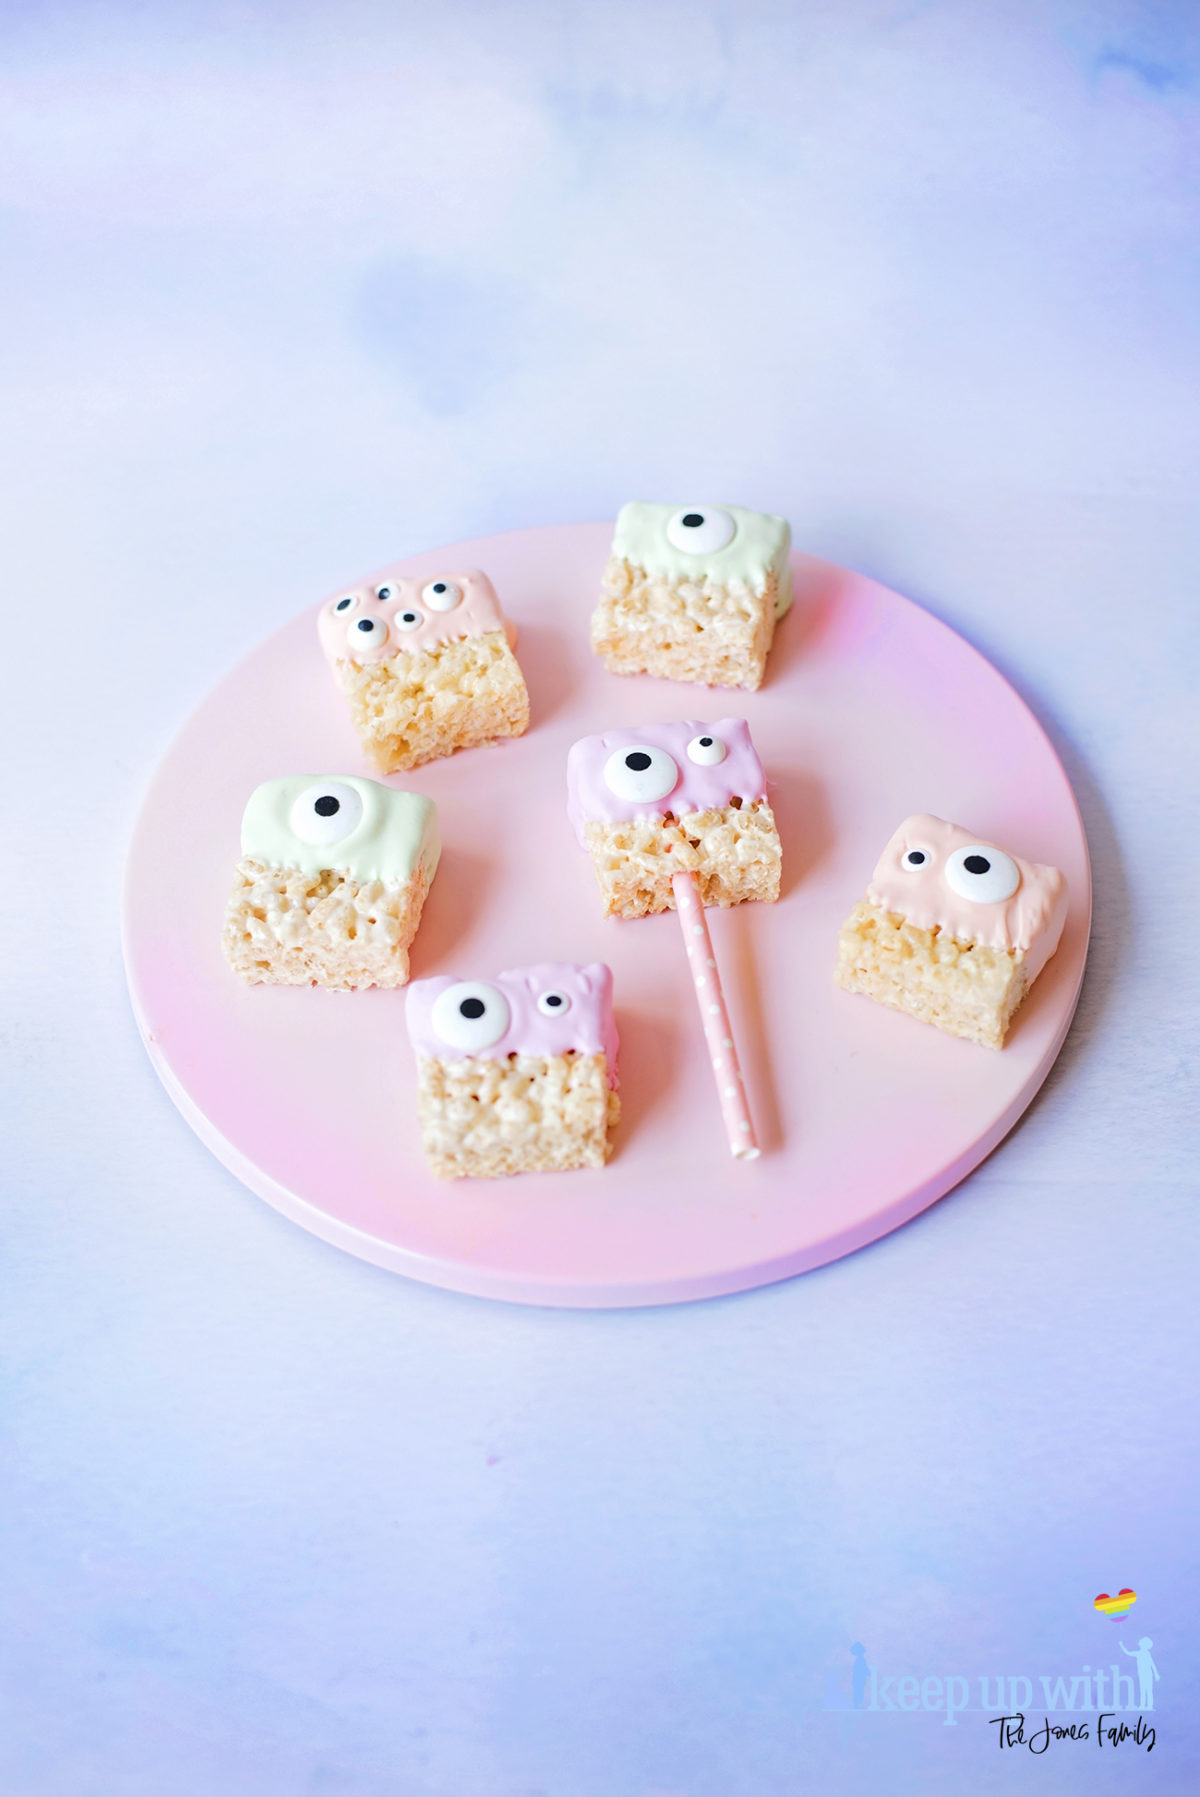 Image shows a pink cake plate with a variety of candy dipped pastel coloured alien rice krispie monsters. Image by Sara-Jayne for Keep Up With The Jones Family.